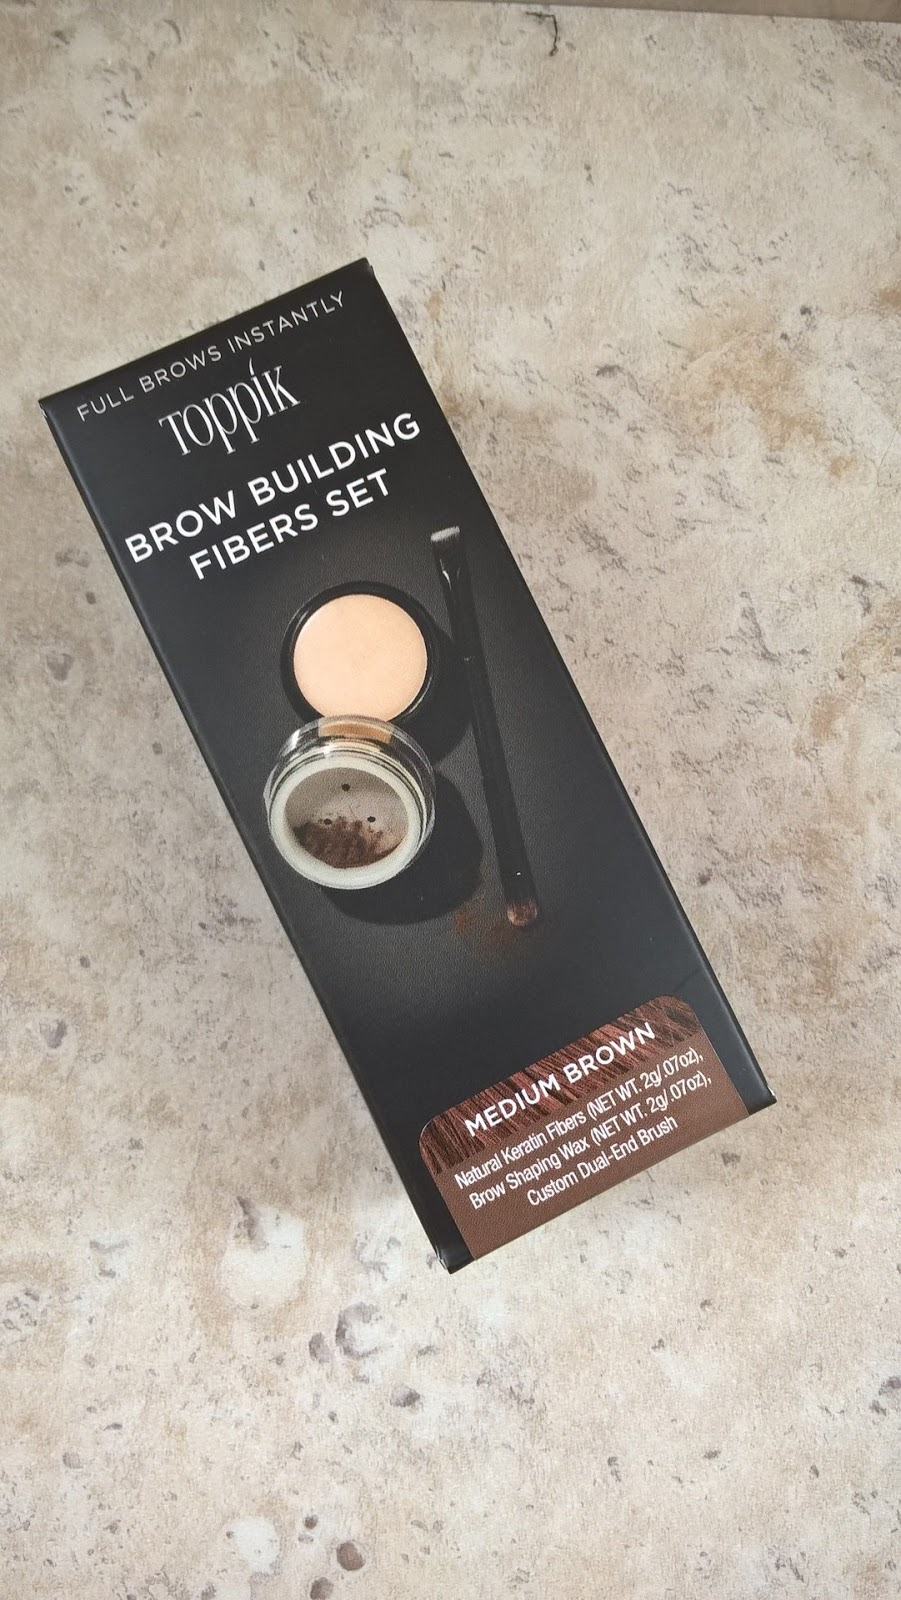 Toppik Brow Building Fibers Set - Beauty - motherdistracted.co.uk